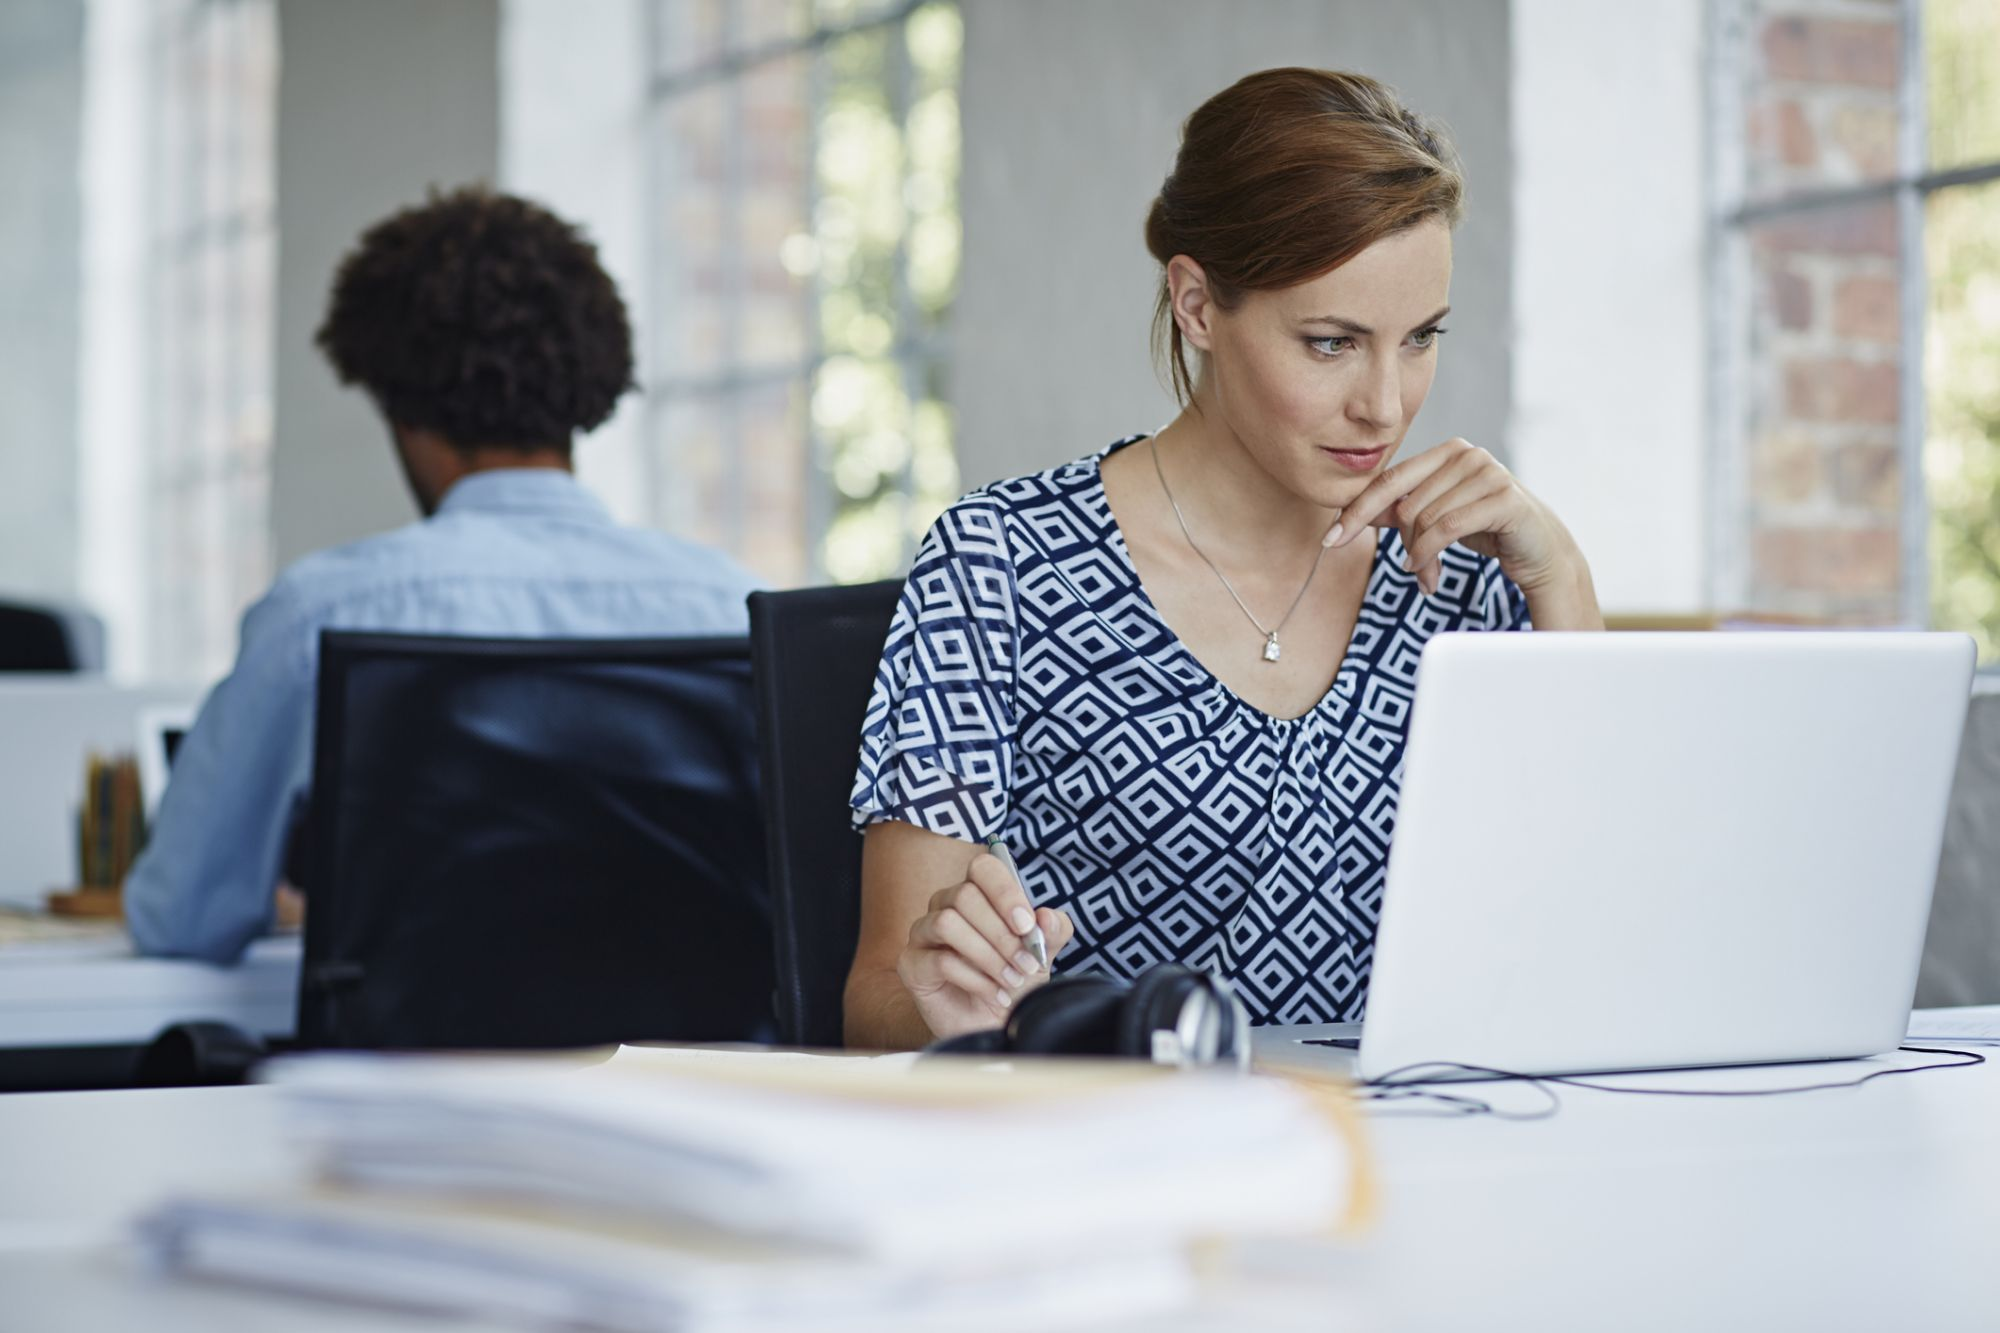 Can't Concentrate? Use These Tips to Get Your Attention Back on Track